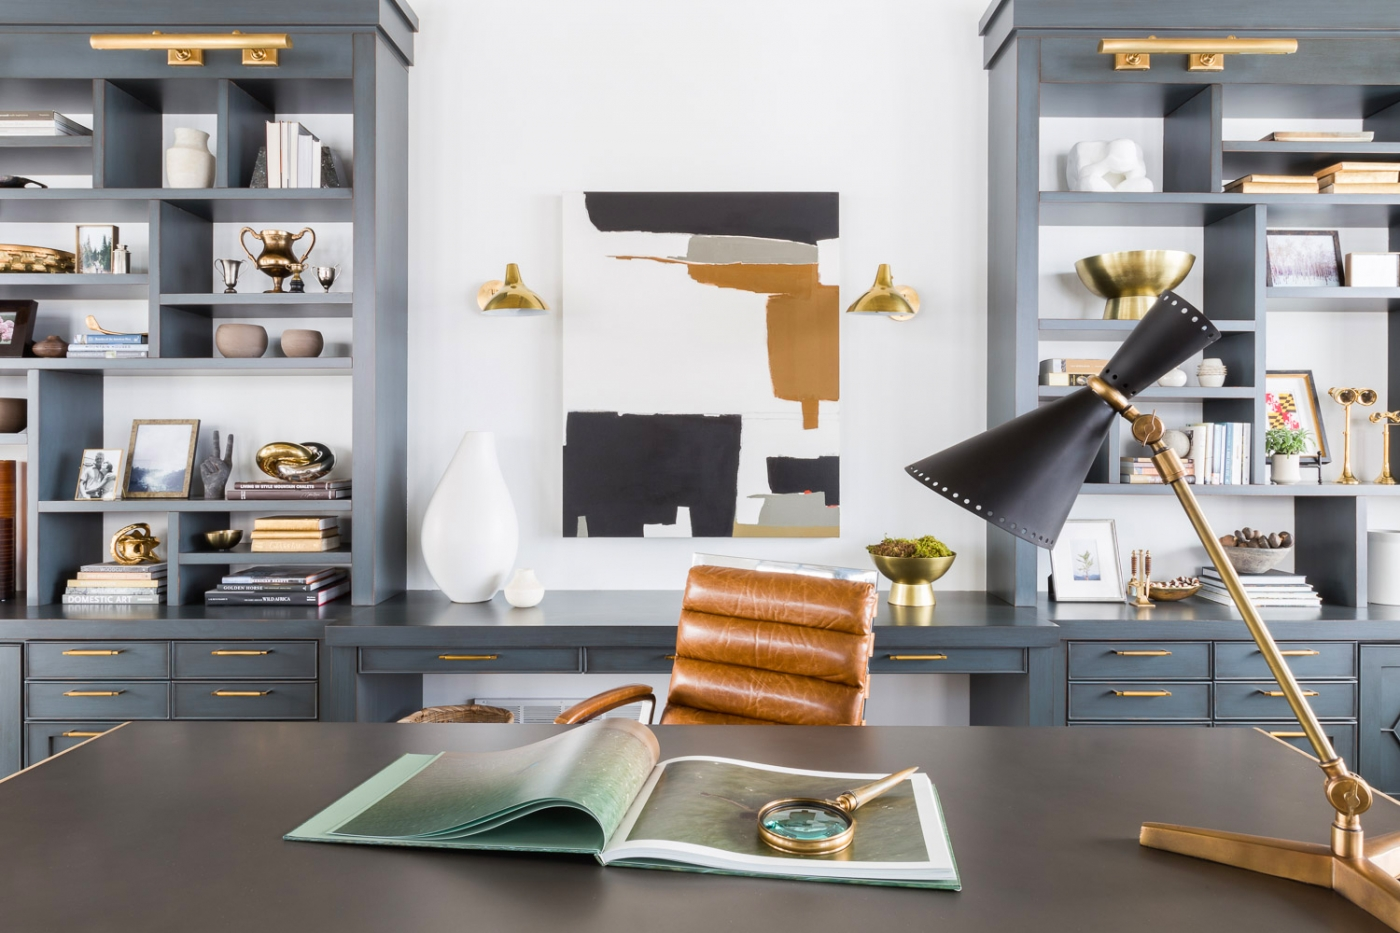 Design Hubs Of The World – 20 Top Interior Designers From Los Angeles top interior designer Design Hubs Of The World – 20 Top Interior Designers From Los Angeles (PART 4!) feature img 1400x933